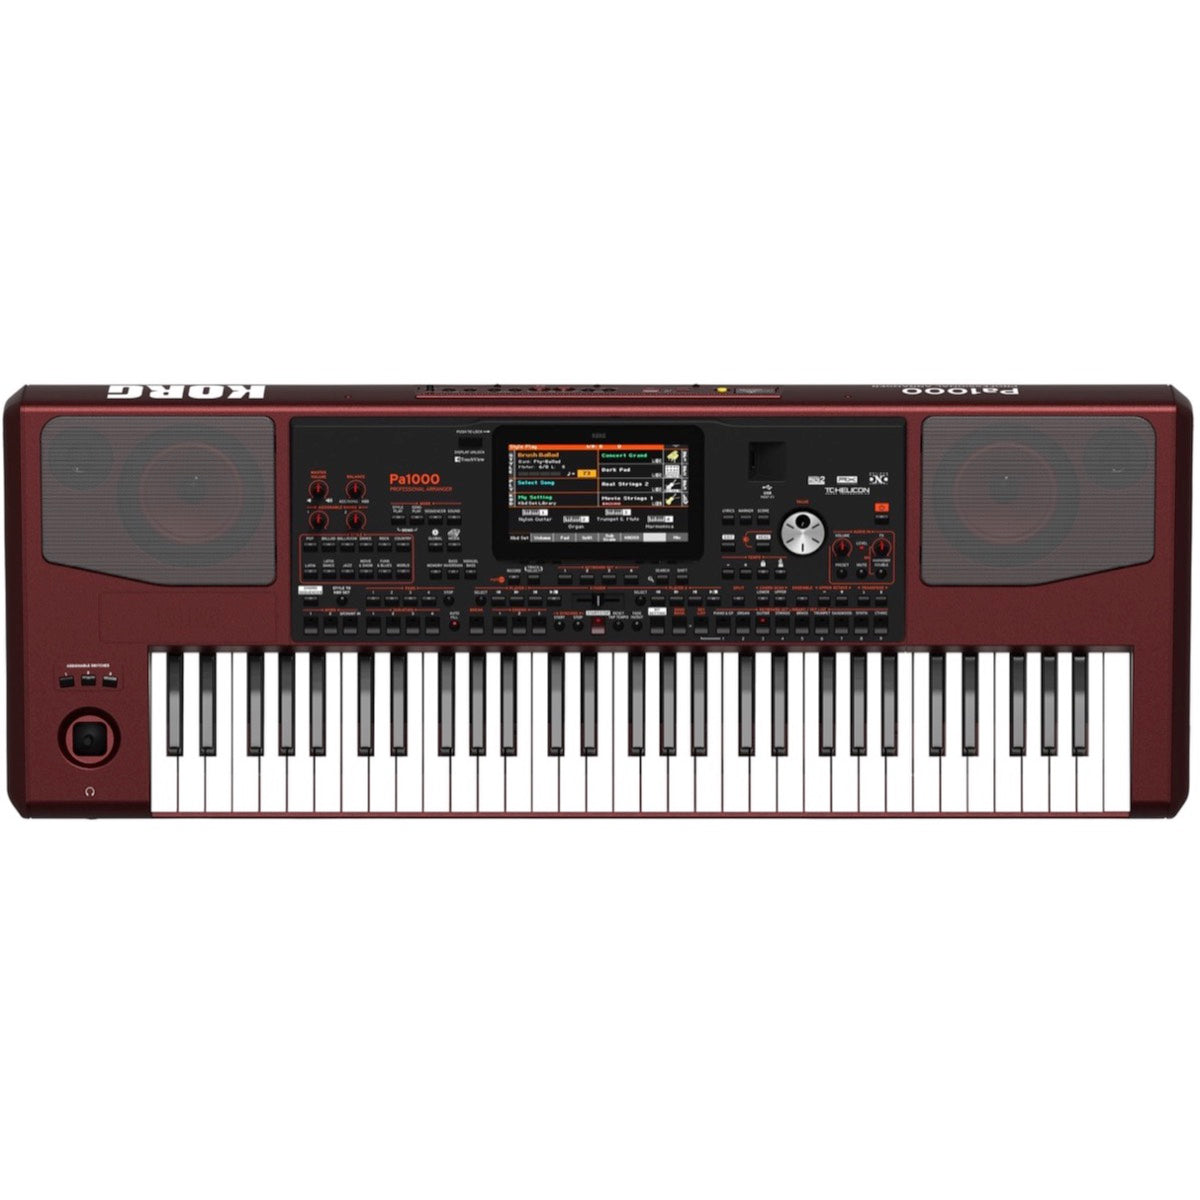 Korg Pa1000 Arranger Workstation Keyboard, 61-Key